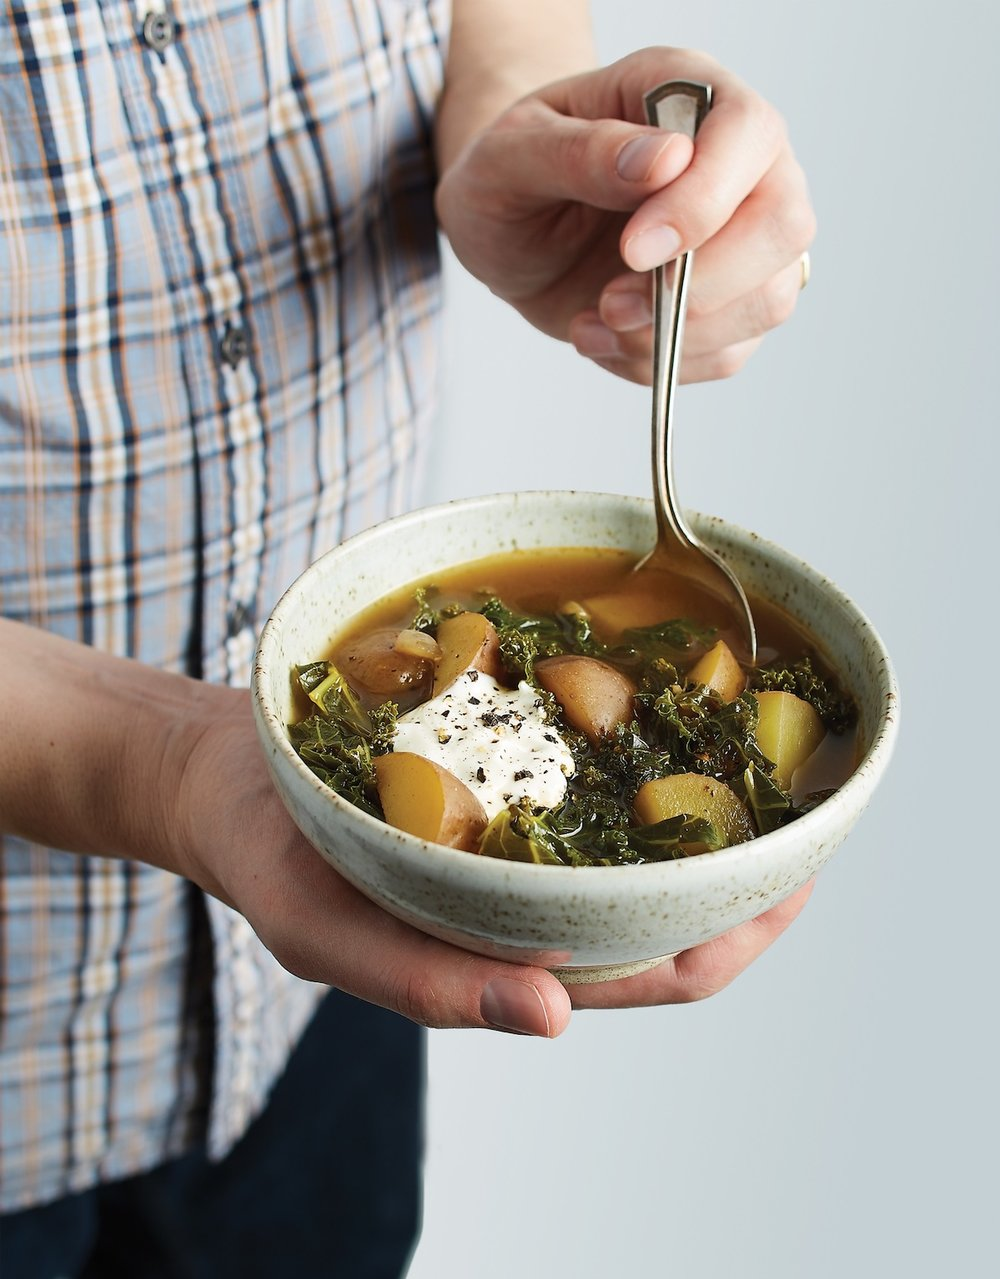 Recipe from the book: Smoky Potato & Kale Soup  -